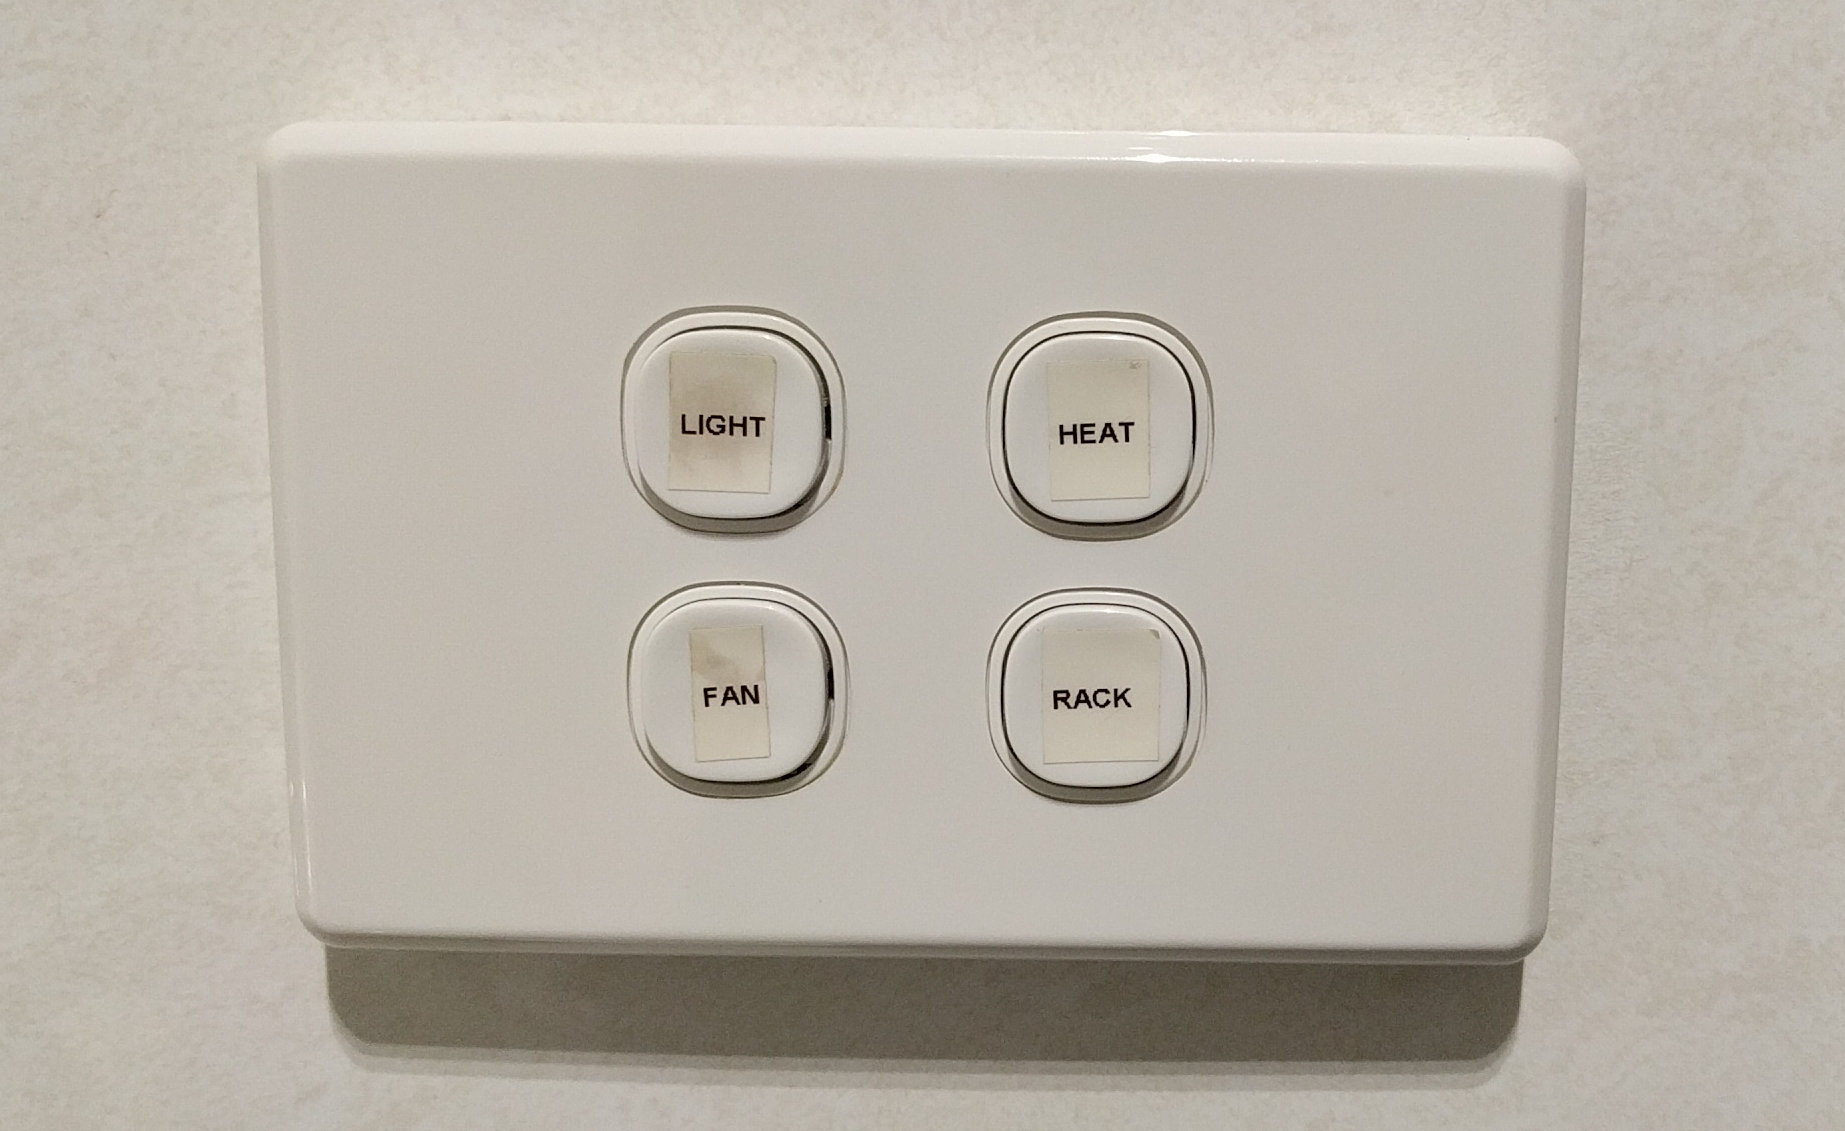 My Custom Open Source Home Automation Project Part 3 Roll Out Mini Pir Motion Sensor Switch W Built In Timer Switches Relays Bathroom Light Dumb Mode